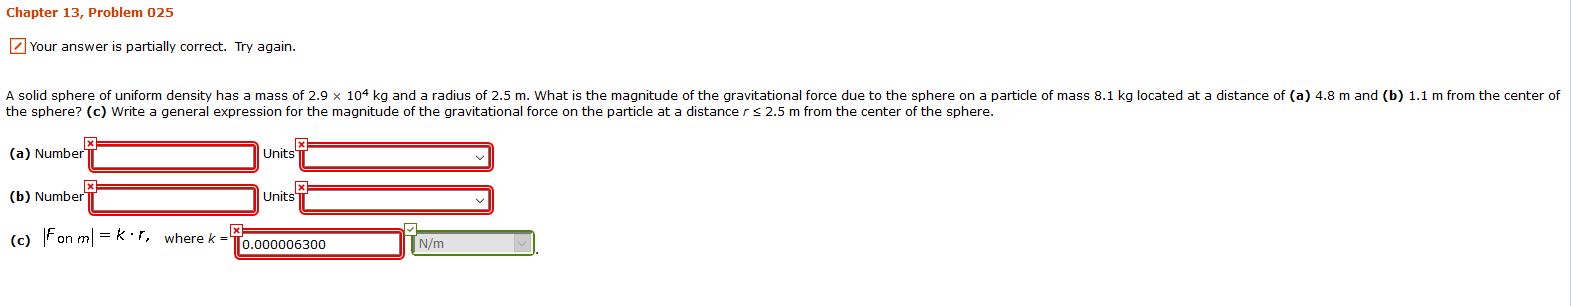 Chapter 13, Problem 025 Your answer is partially correct. Try again. A solid sphere of uniform density has a mass of 2.9 x 104 kq and a radius of 2.5 m. What is the magnitude of the gravitational force due to the sphere on a particle of mass 8.1 kg located at a distance of (a) 4.8 m and (b) 1.1 m from the center of the sphere? (c) Write a general expression for the magnitude of the gravitational force on the particle at a distance rs 2.5 m from the center of the sphere. (a) Number Units (b) Number Units (c) Fon mk r, where k 0.000006300 N/m